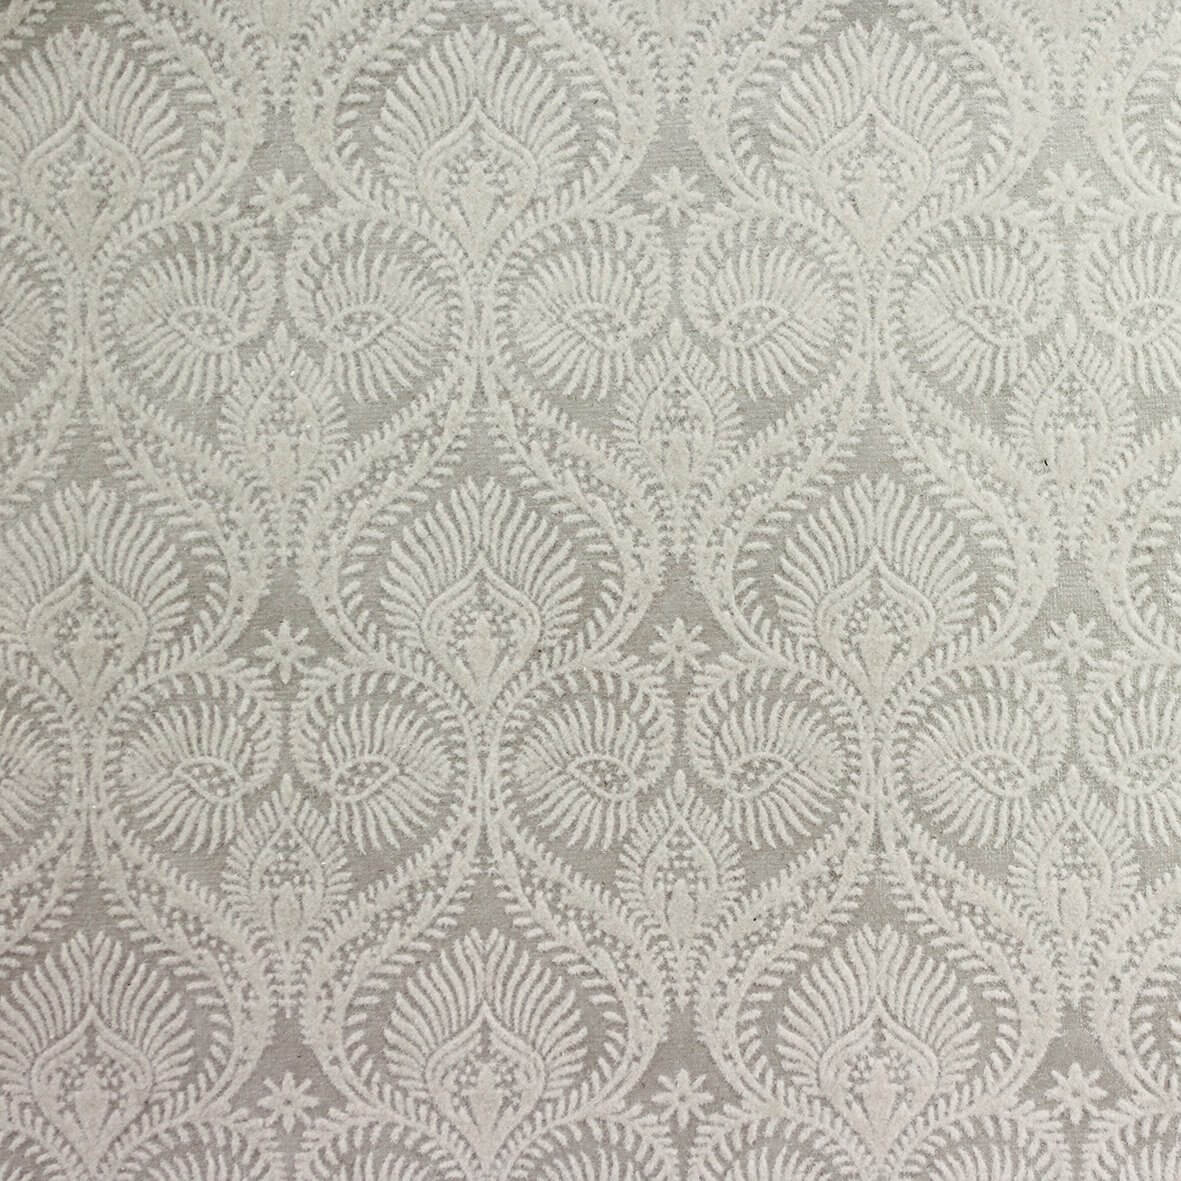 The Woburn (Ivory on Ivory) A4 Flocked Paper.